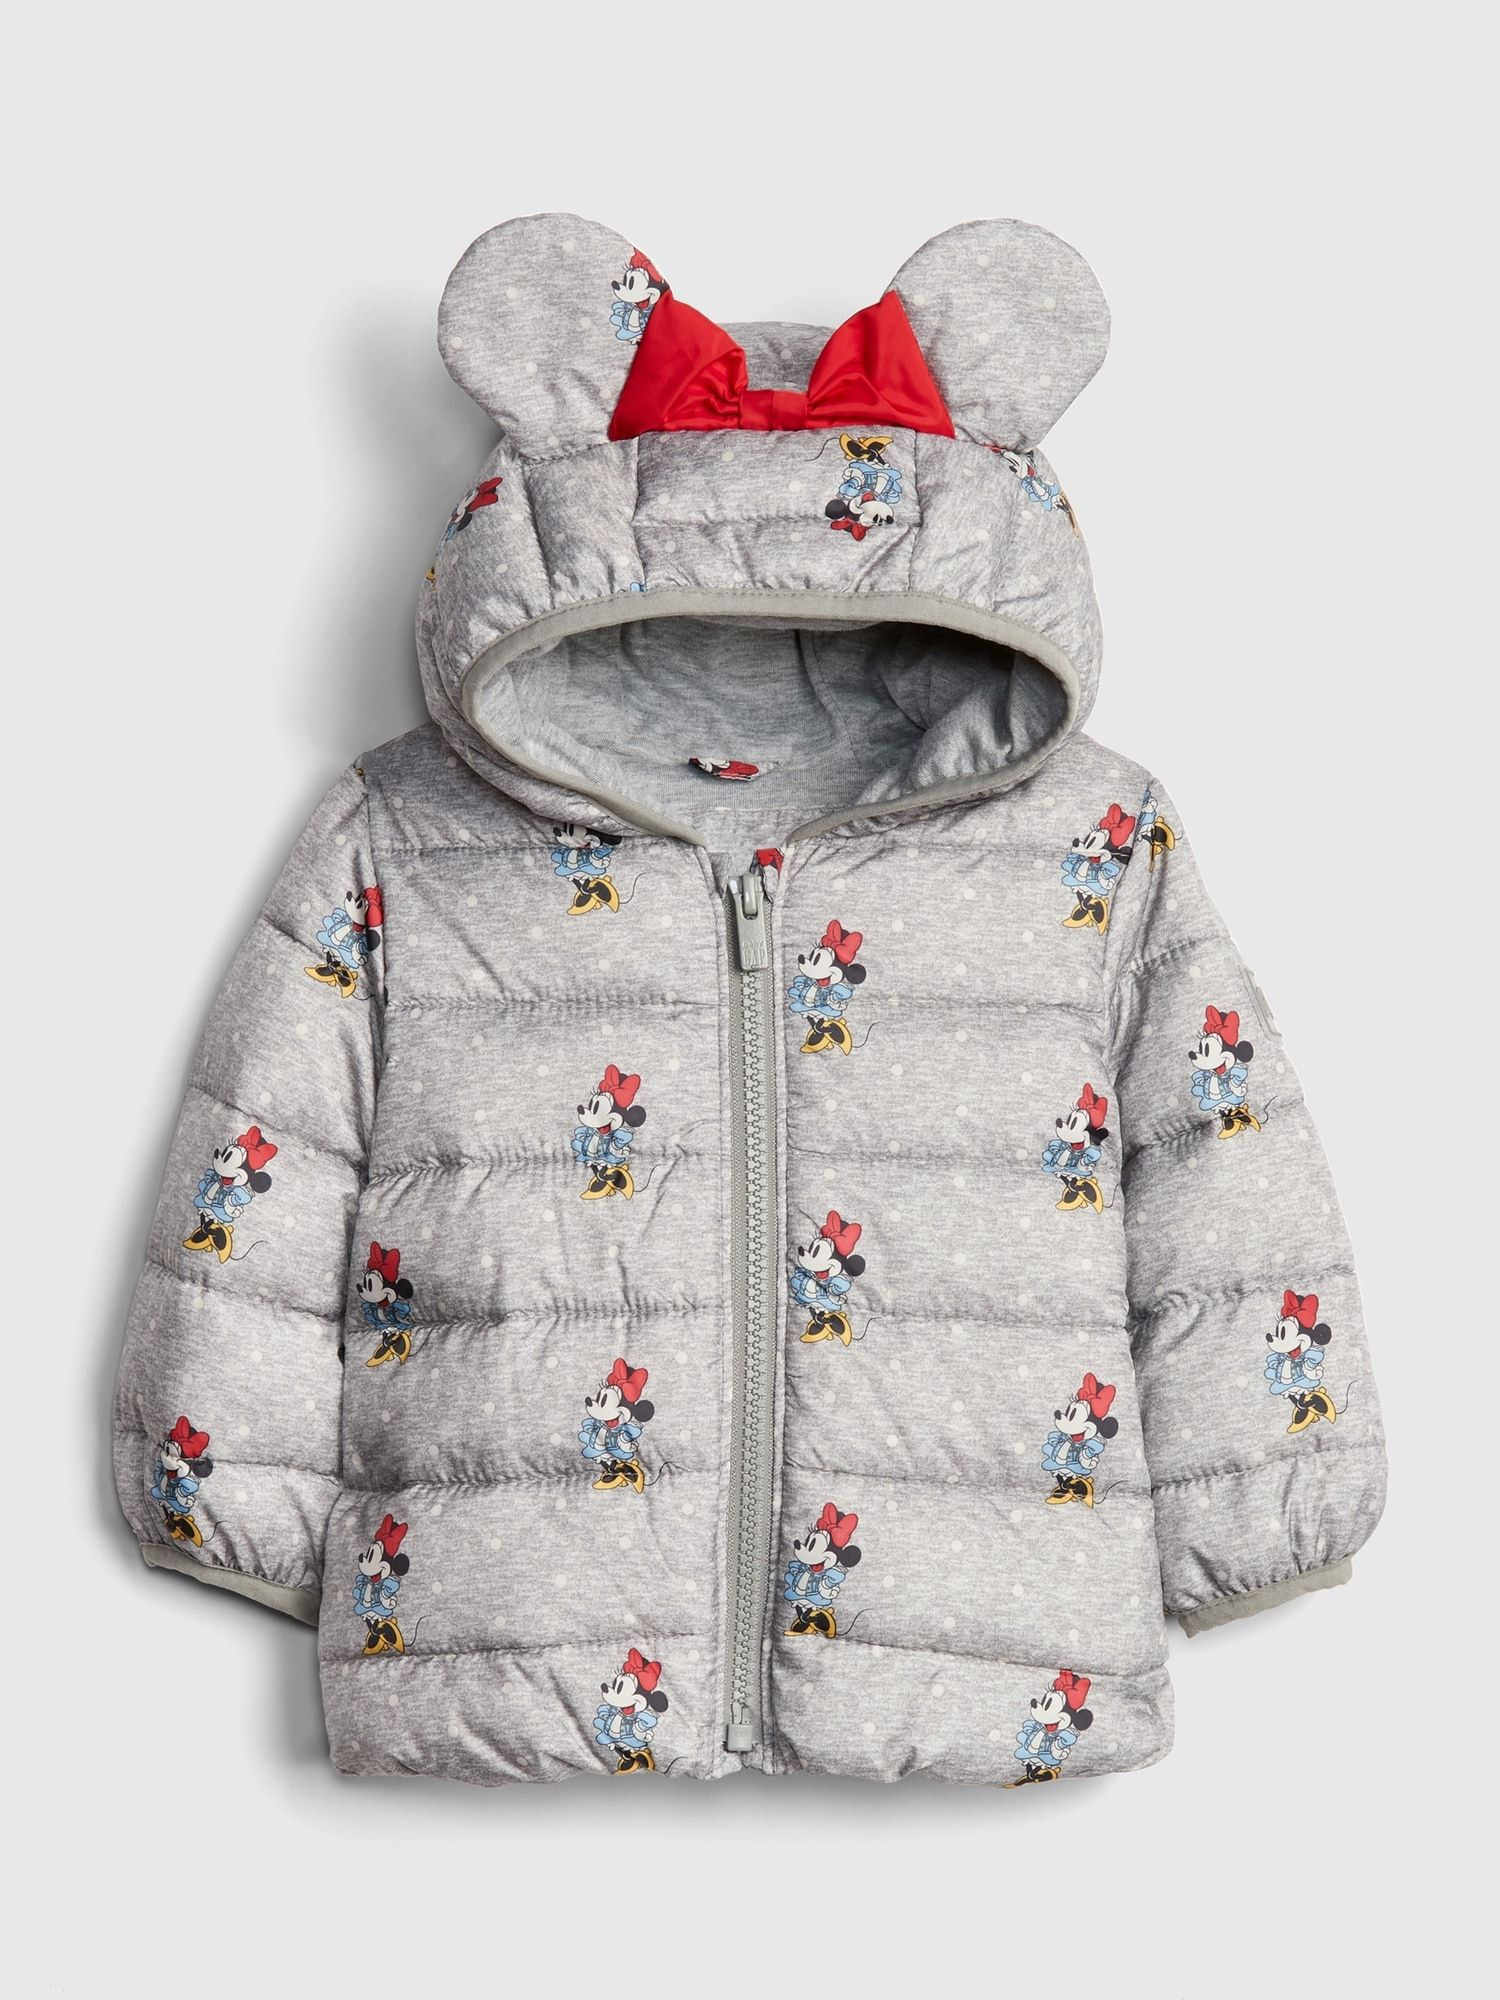 Babygap Disney Minnie Mouse Coldcontrol Puffer Gap Disney Baby Clothes Baby Kids Clothes Cute Baby Clothes [ 2000 x 1500 Pixel ]